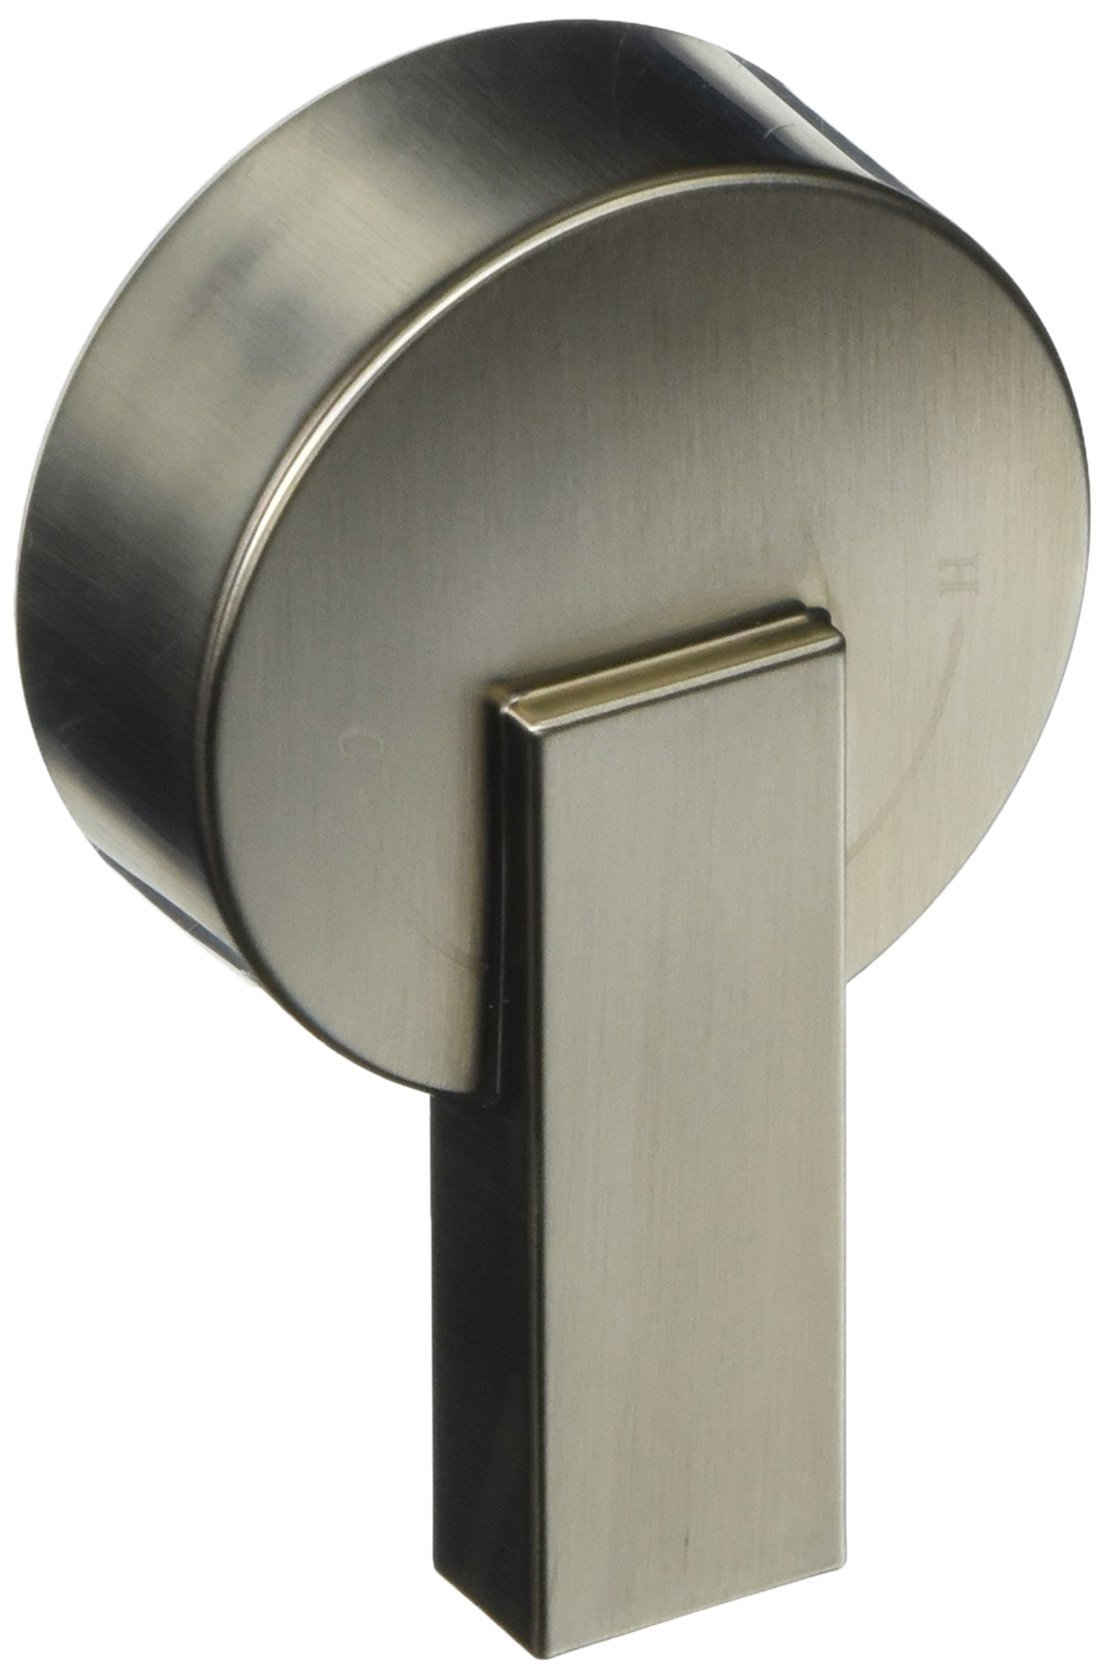 Delta RP62956SS Vero Single Metal Lever Handle Temperature Knob and Cover, Stainless